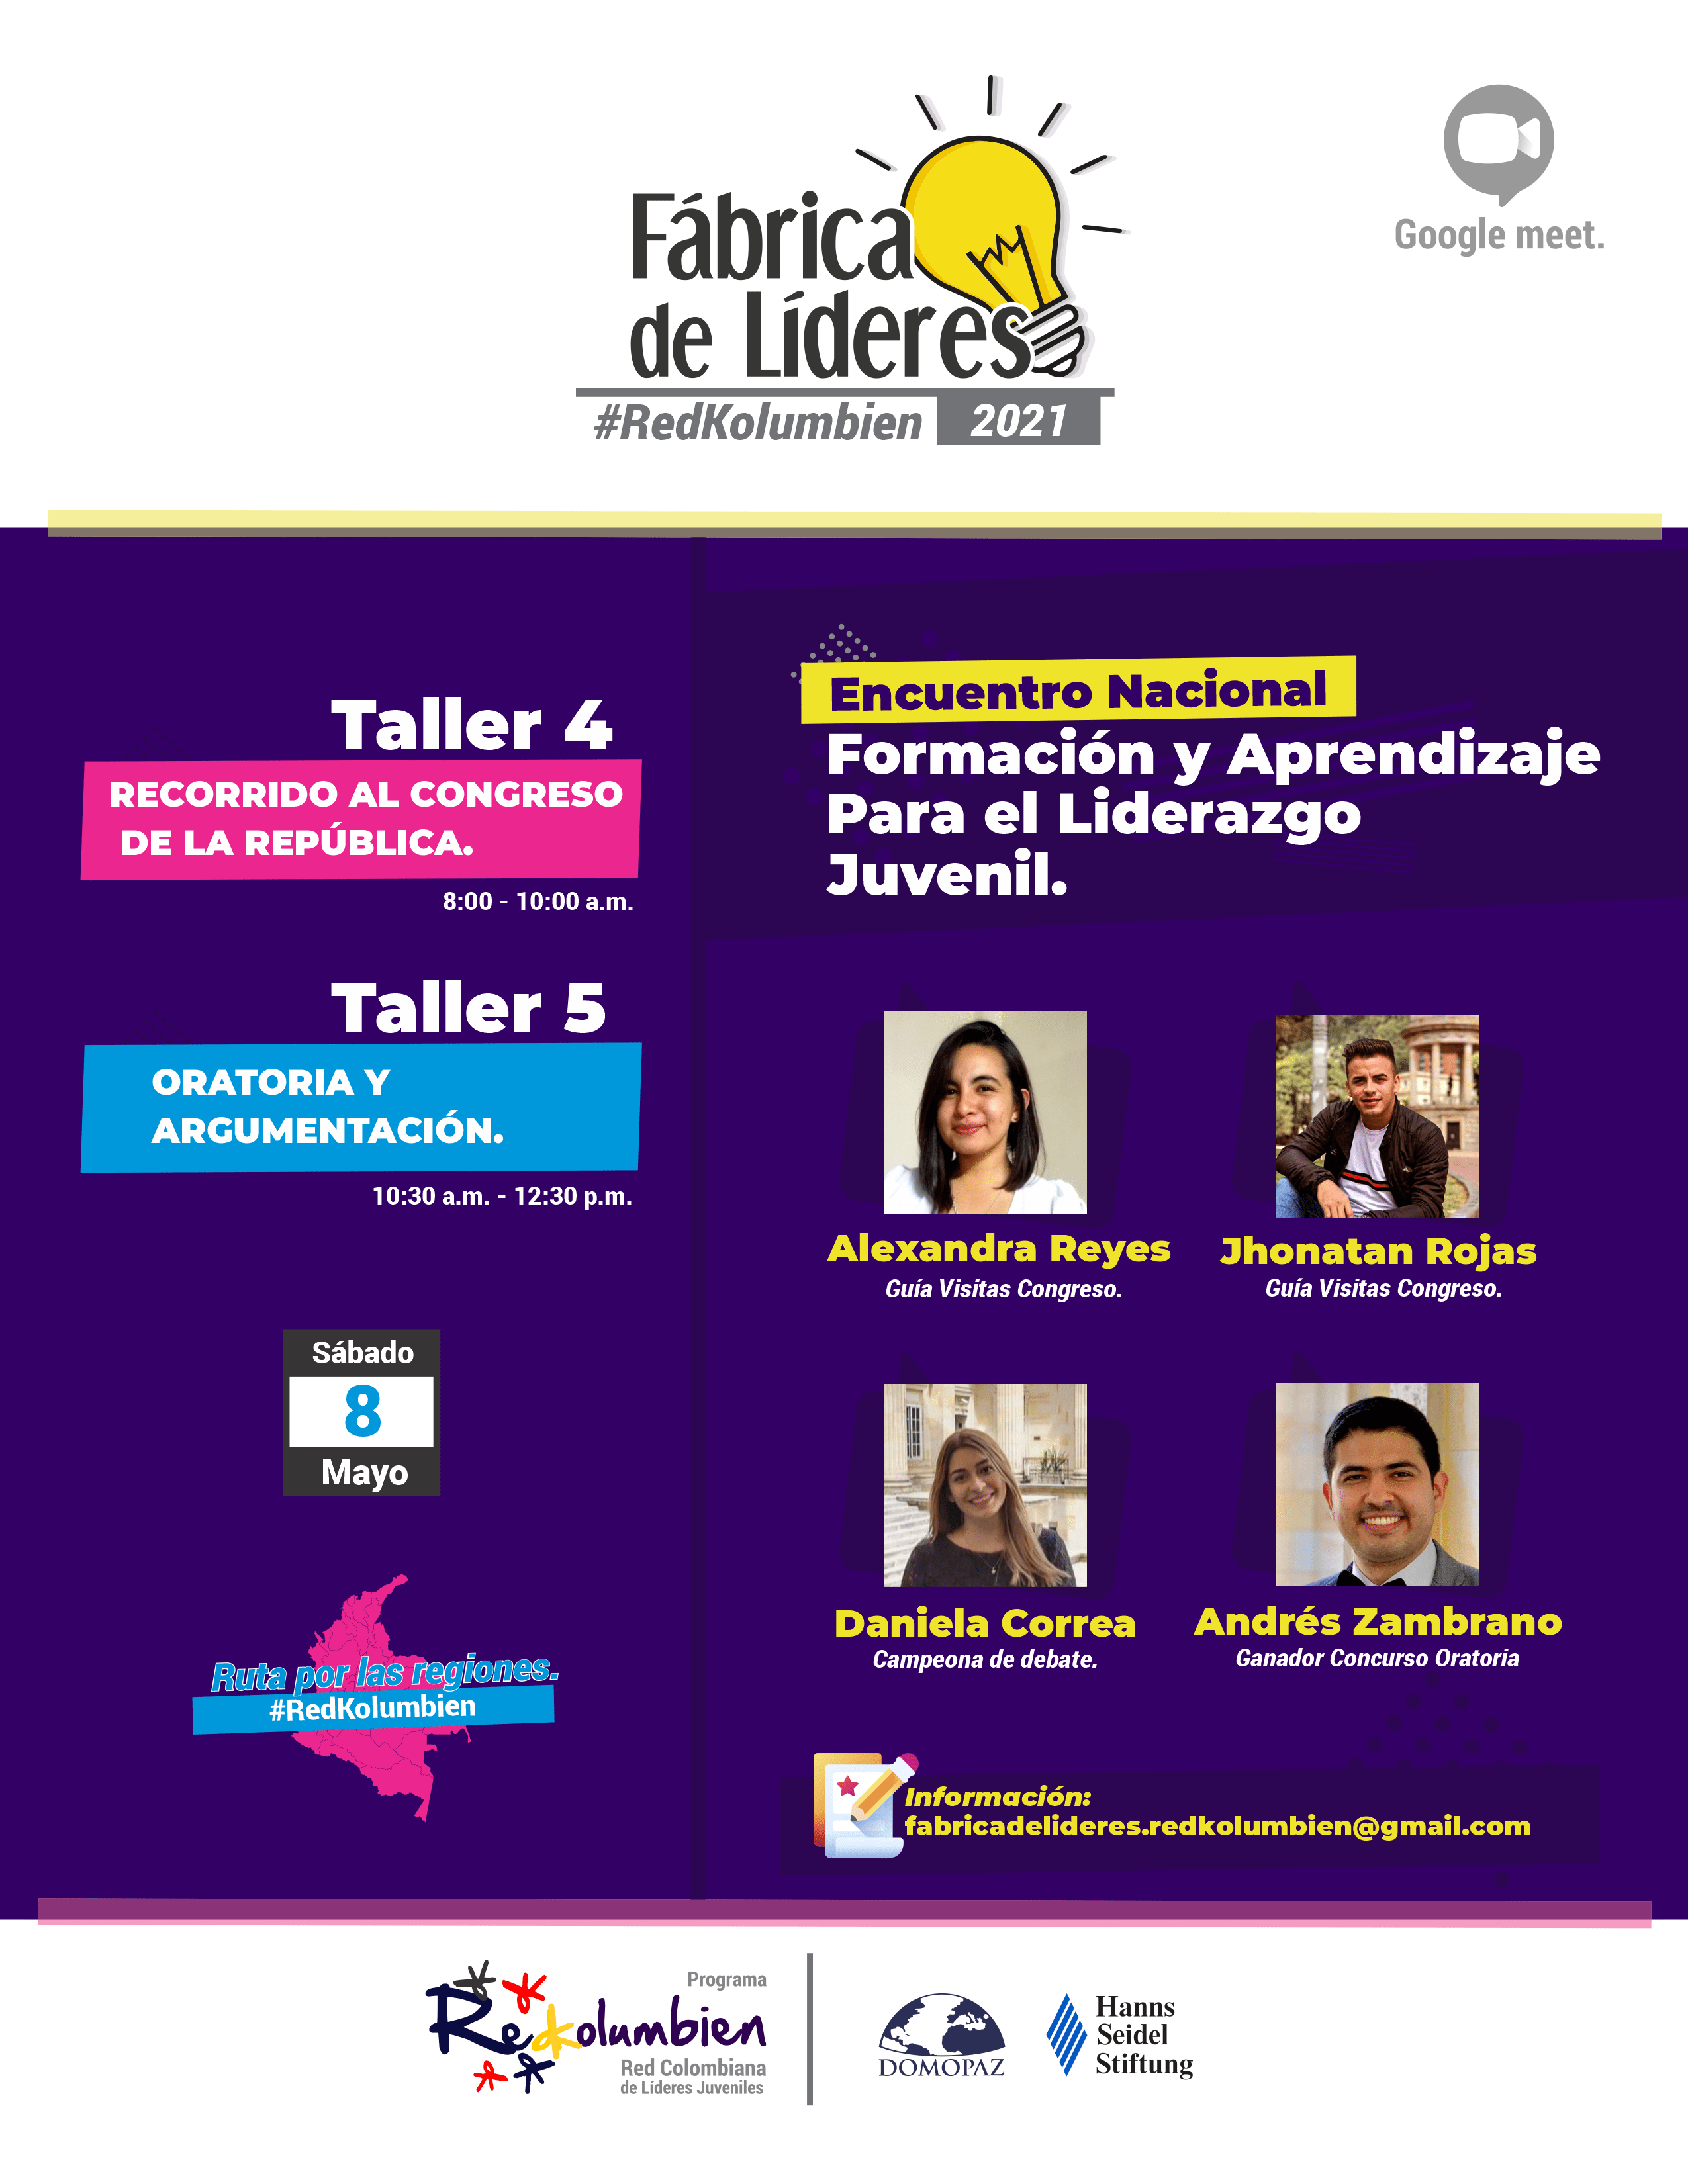 AFICHE TALLER 4 FAB LID MAY 2021